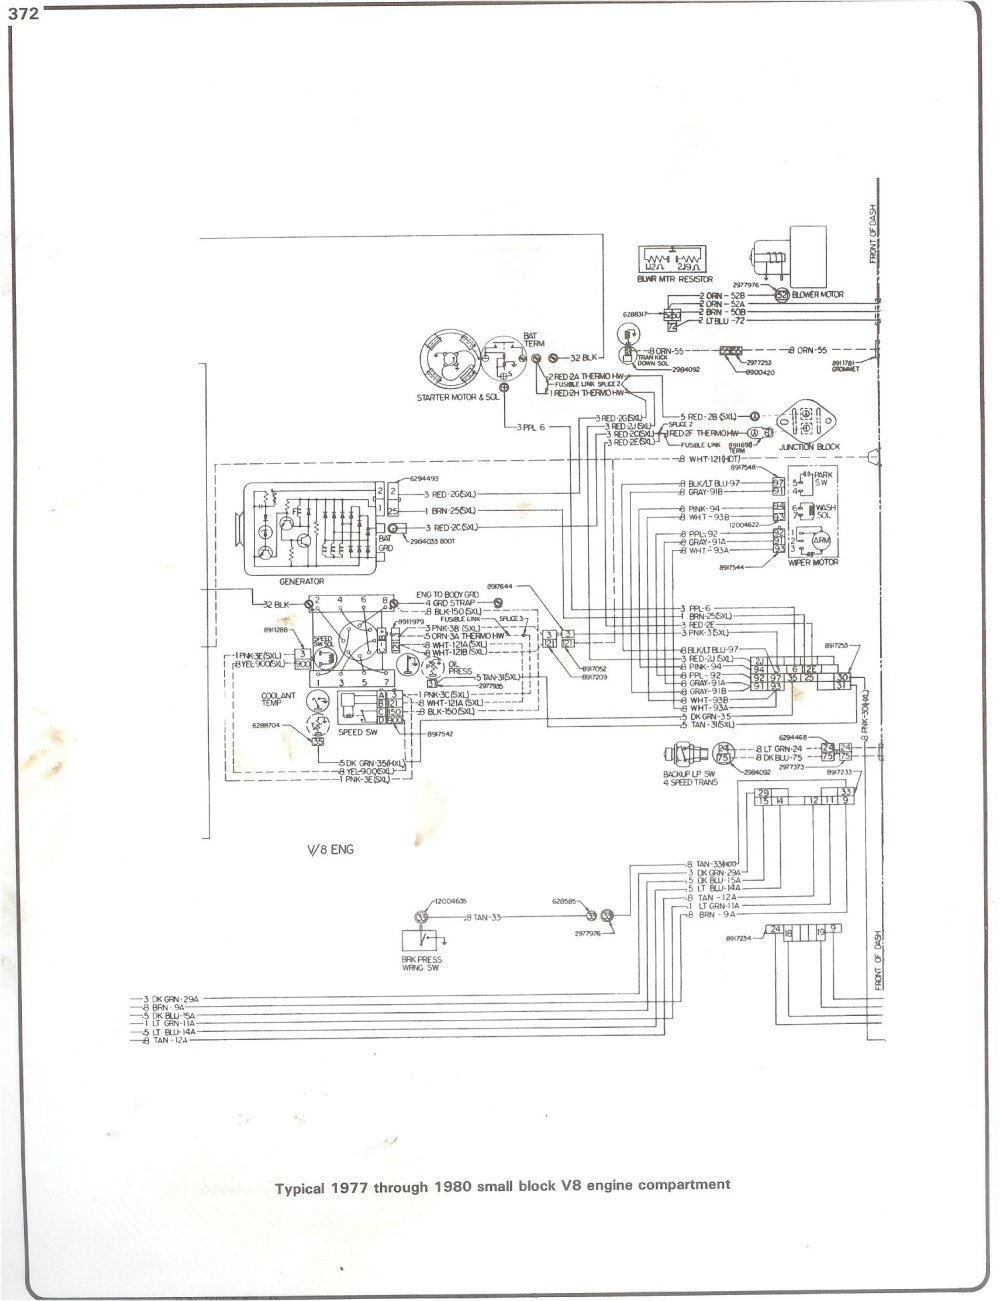 medium resolution of 75 k 5 wiring diagram wiring diagram1976 chevy k 5 wiring diagram wiring diagram site1977 chevy